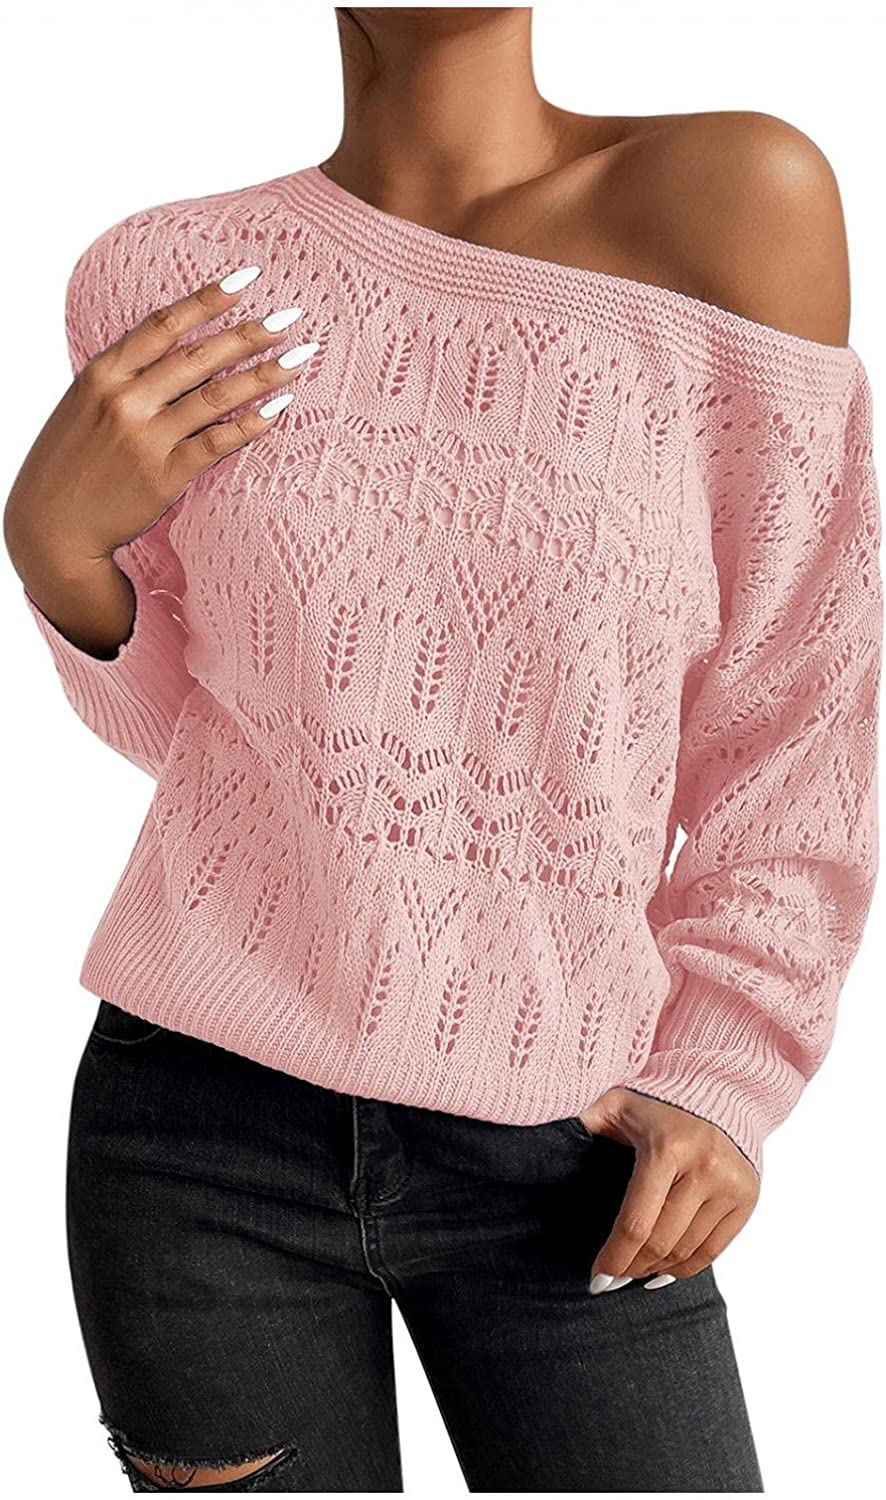 iLUGU Women's Casual Sexy One Shoulder Knitted Sweater Solid Hollow Out Long Sleeve Loose Pullover Top Winter